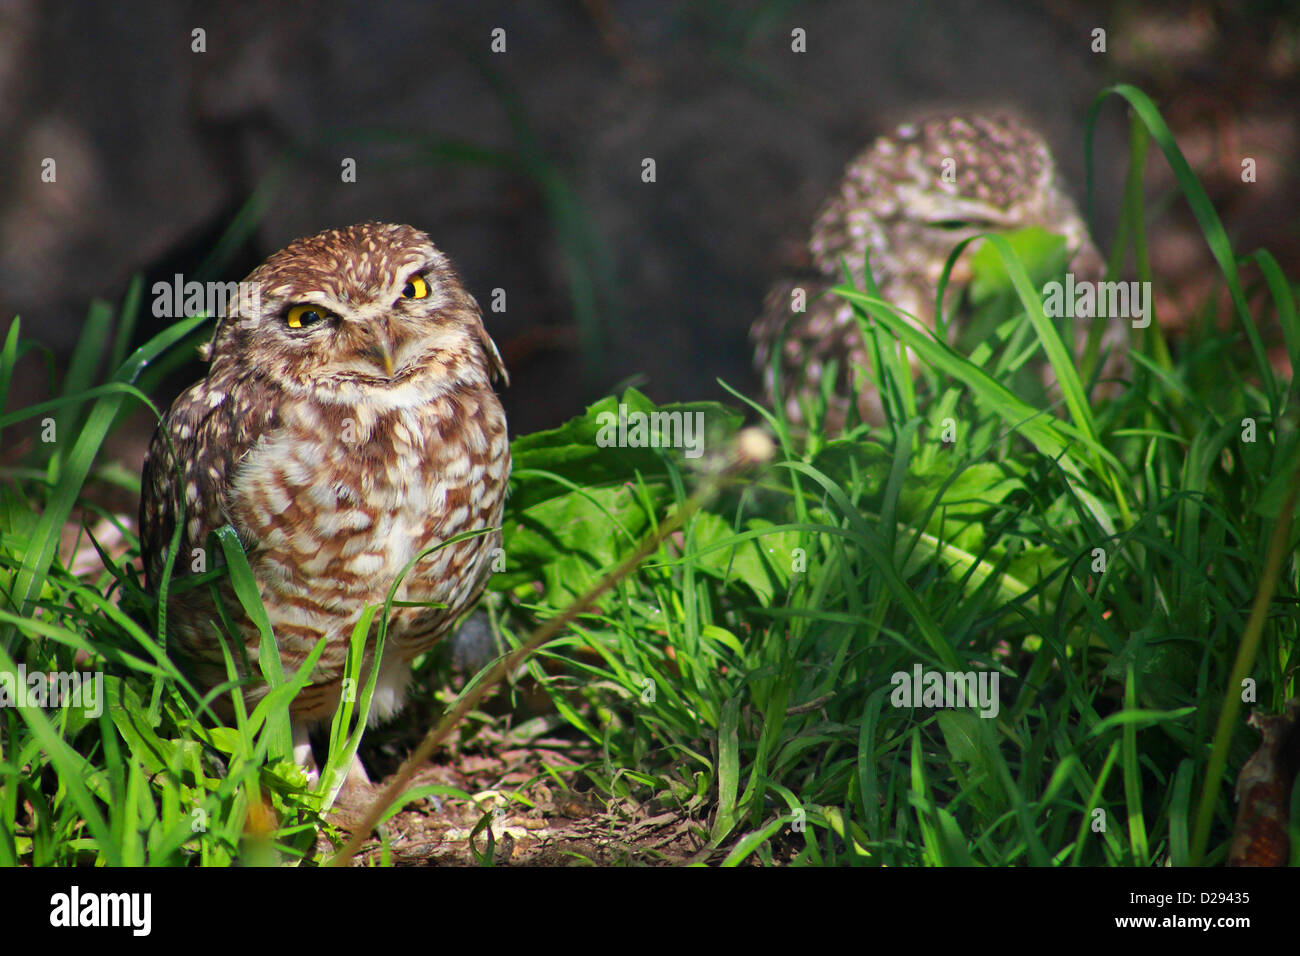 burrowing owls in parque condor, otavalo, ecuador - Stock Image